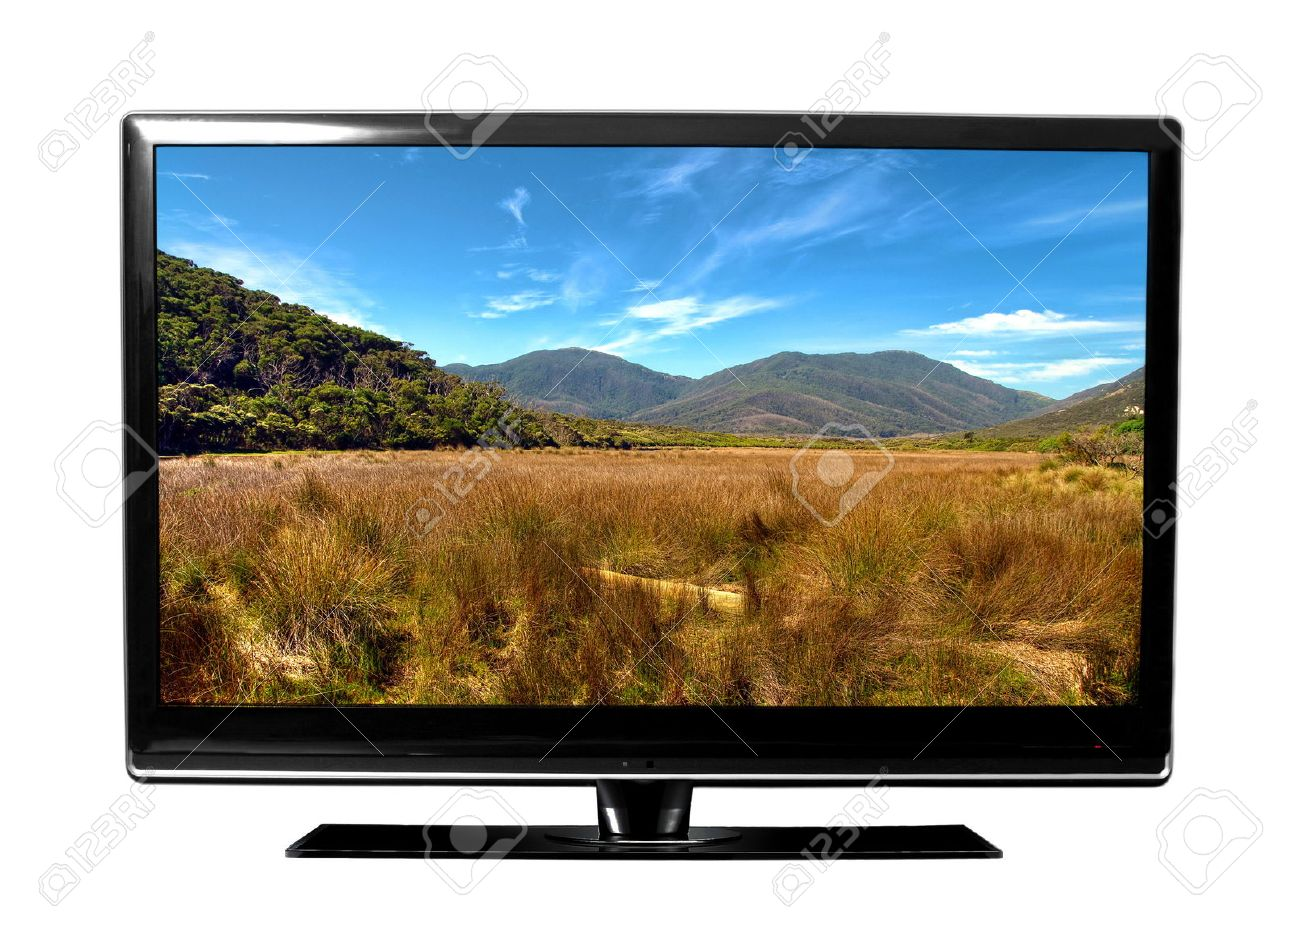 Big Tv Screen With Landscape Stock Photo, Picture And Royalty Free Image.  Image 23463527.